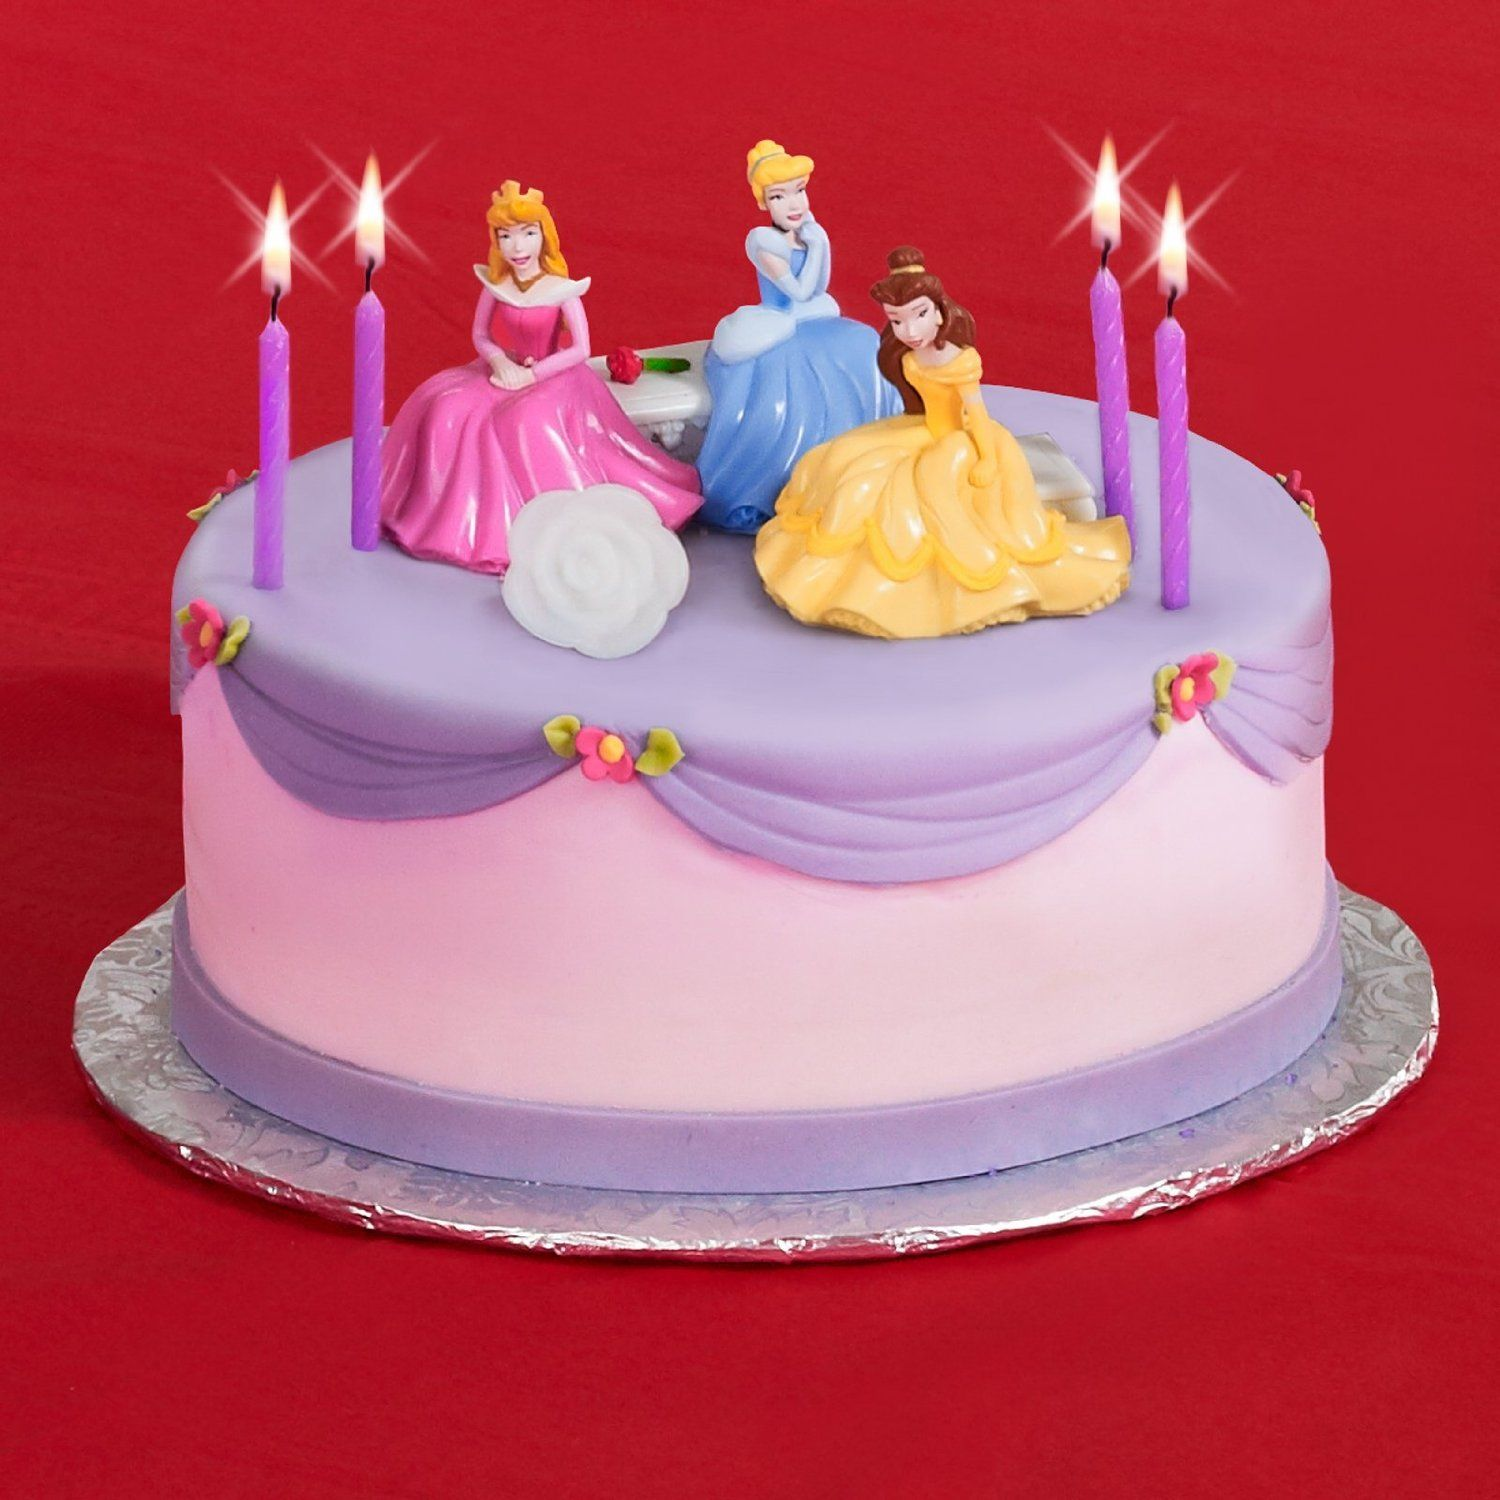 Walmart Bakery Birthday Cakes Photos | DISNEY CAKES TIPS ...